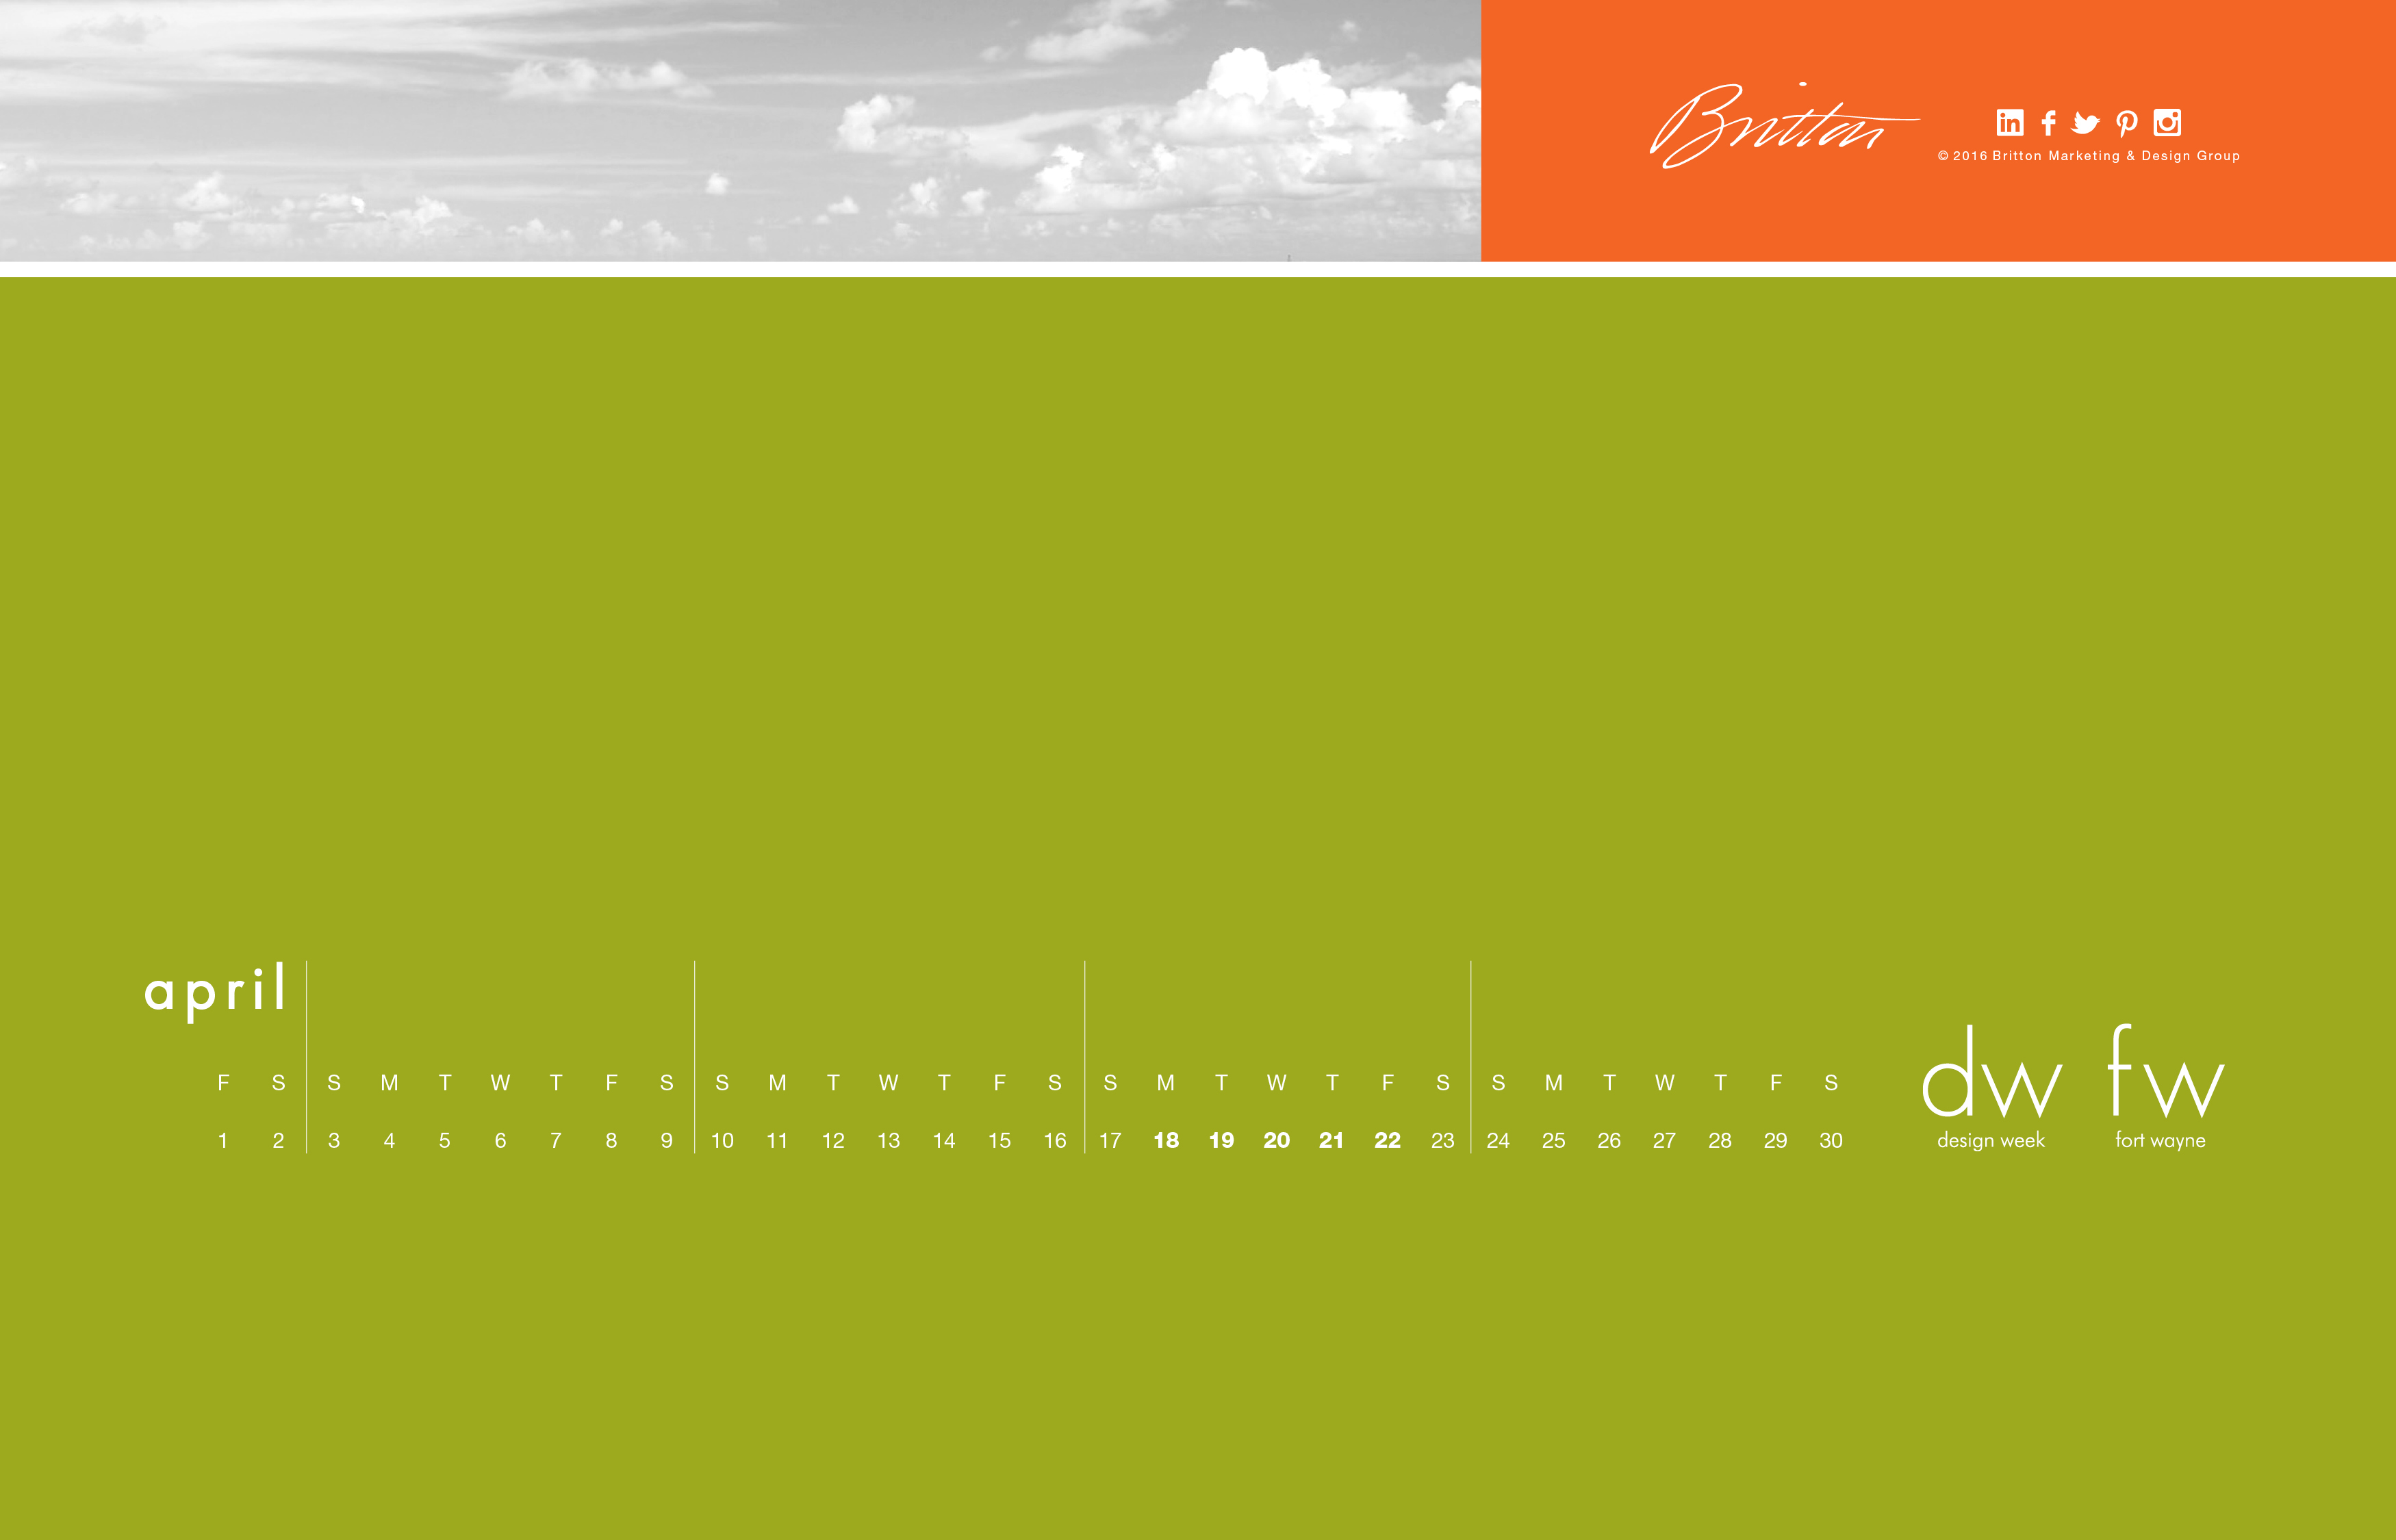 April Calendar Design Week - Standard version